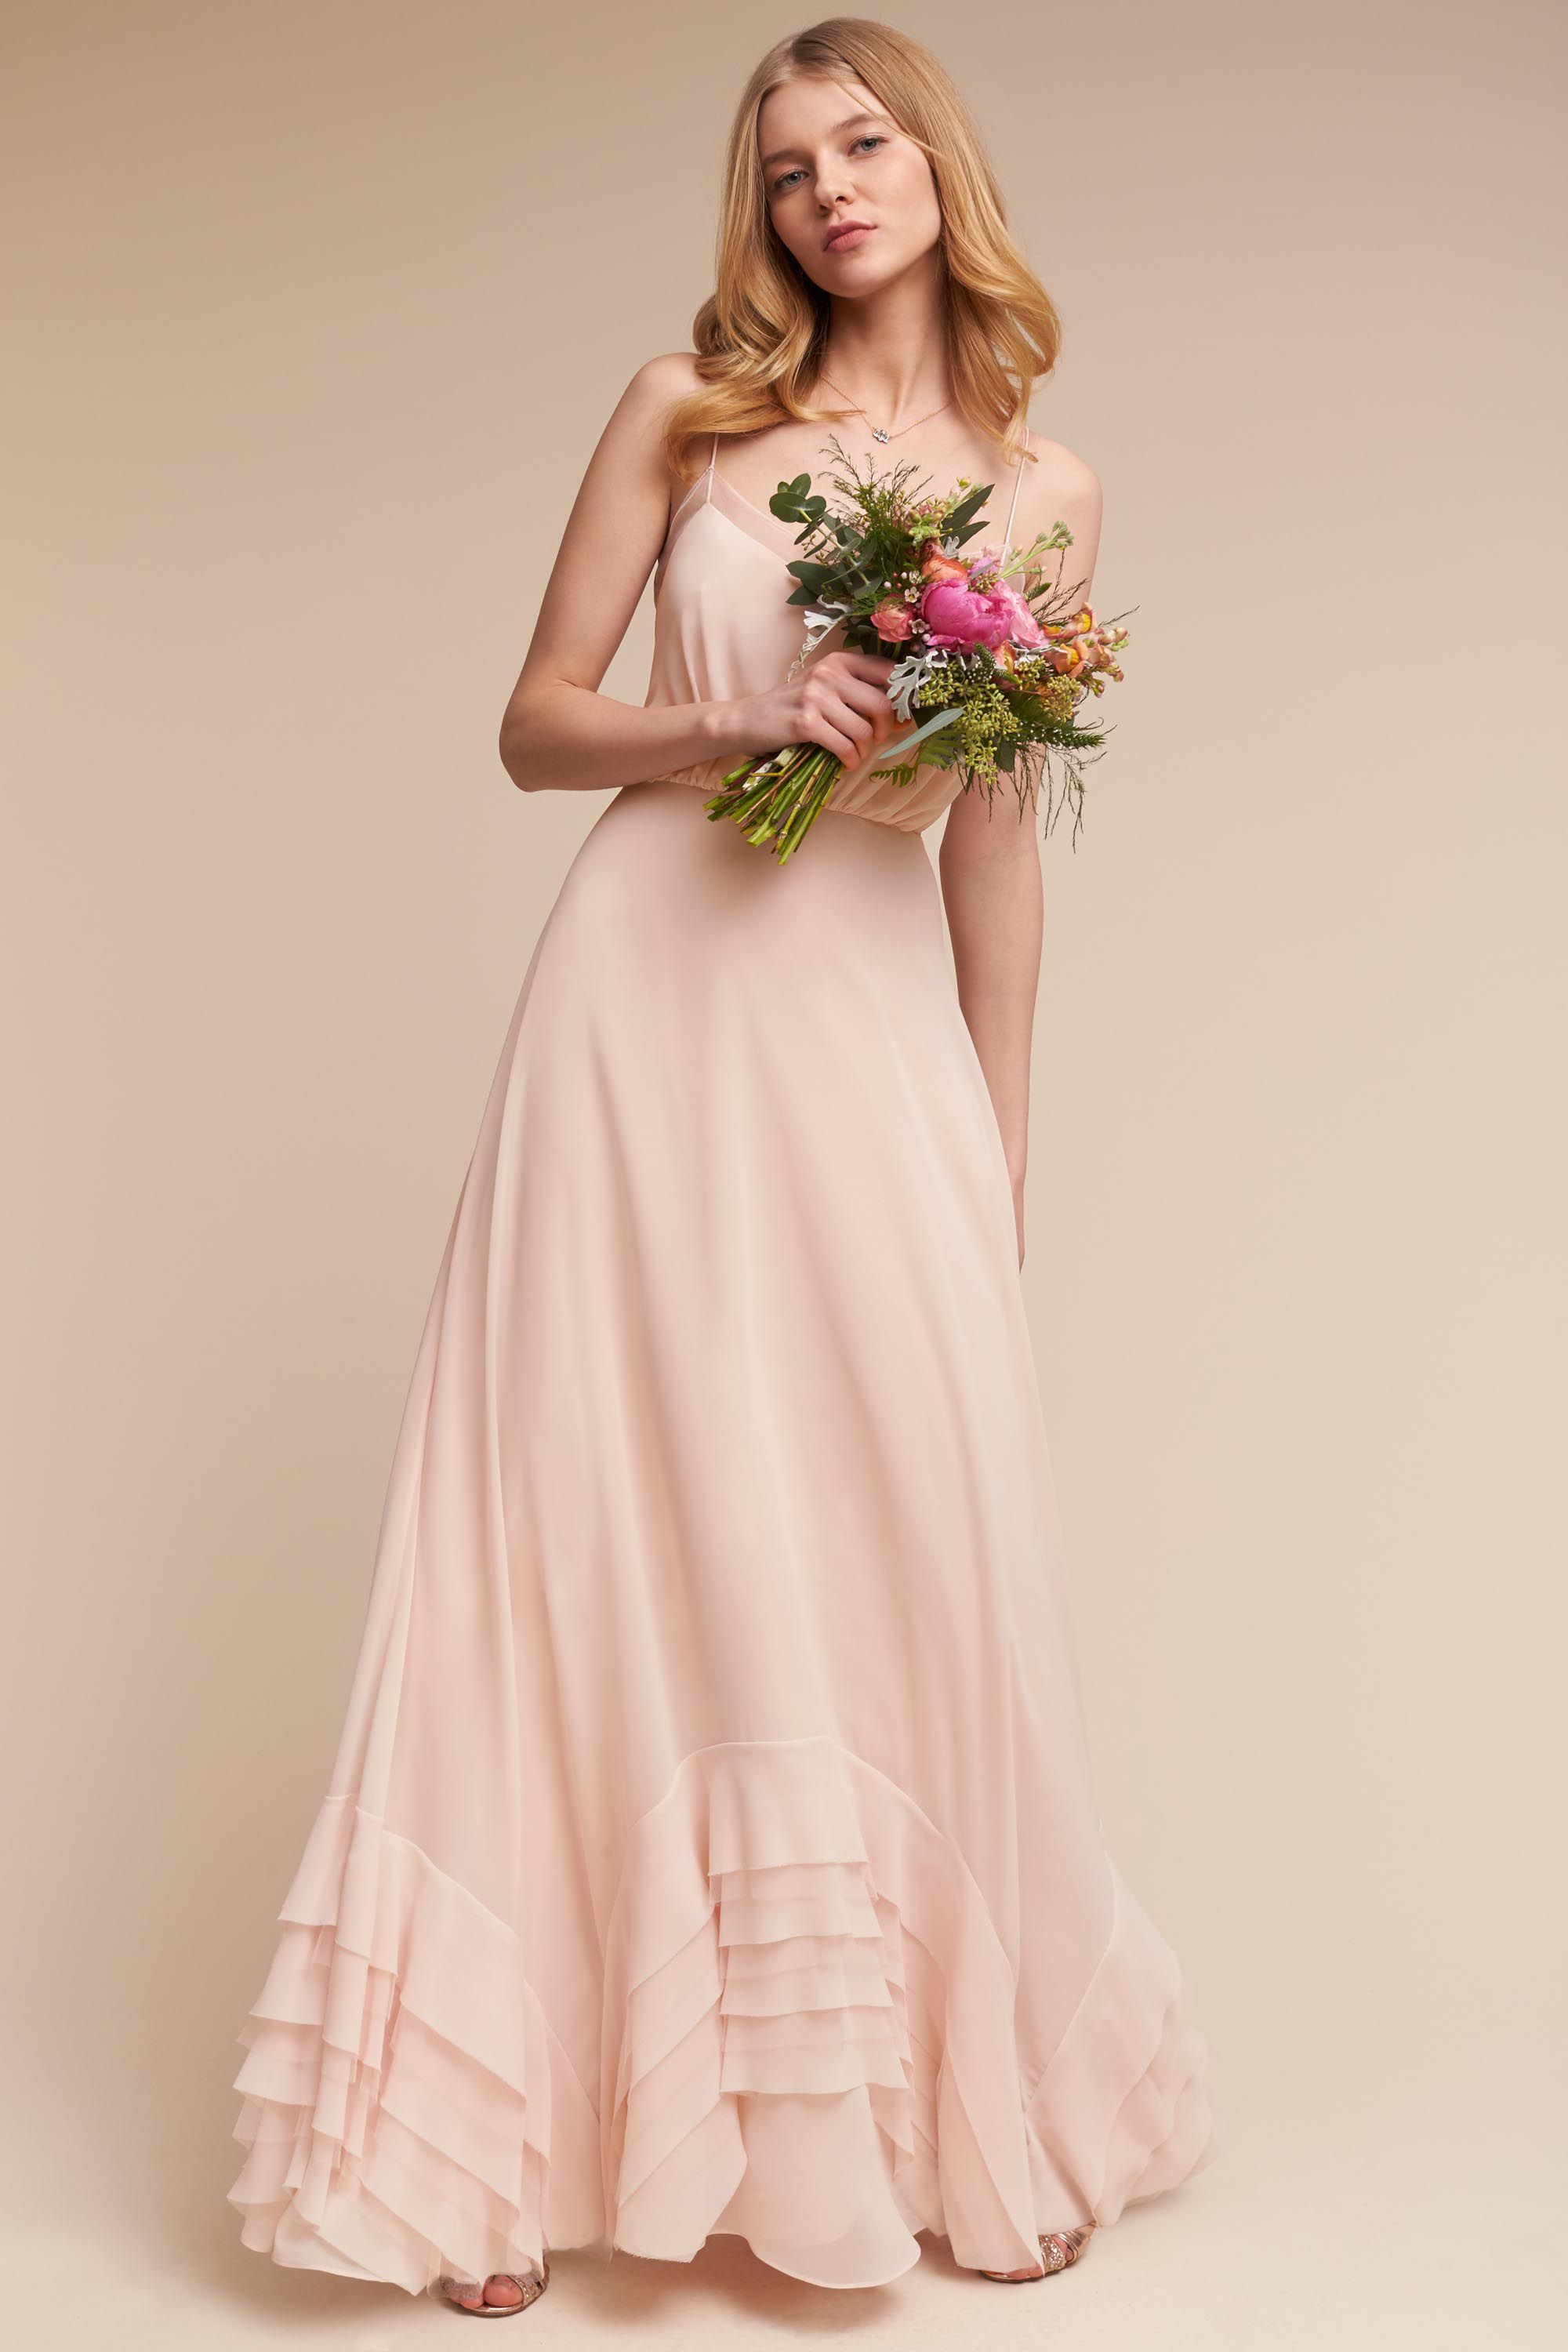 BHLDN Products on Sale Discounted BHLDN Items